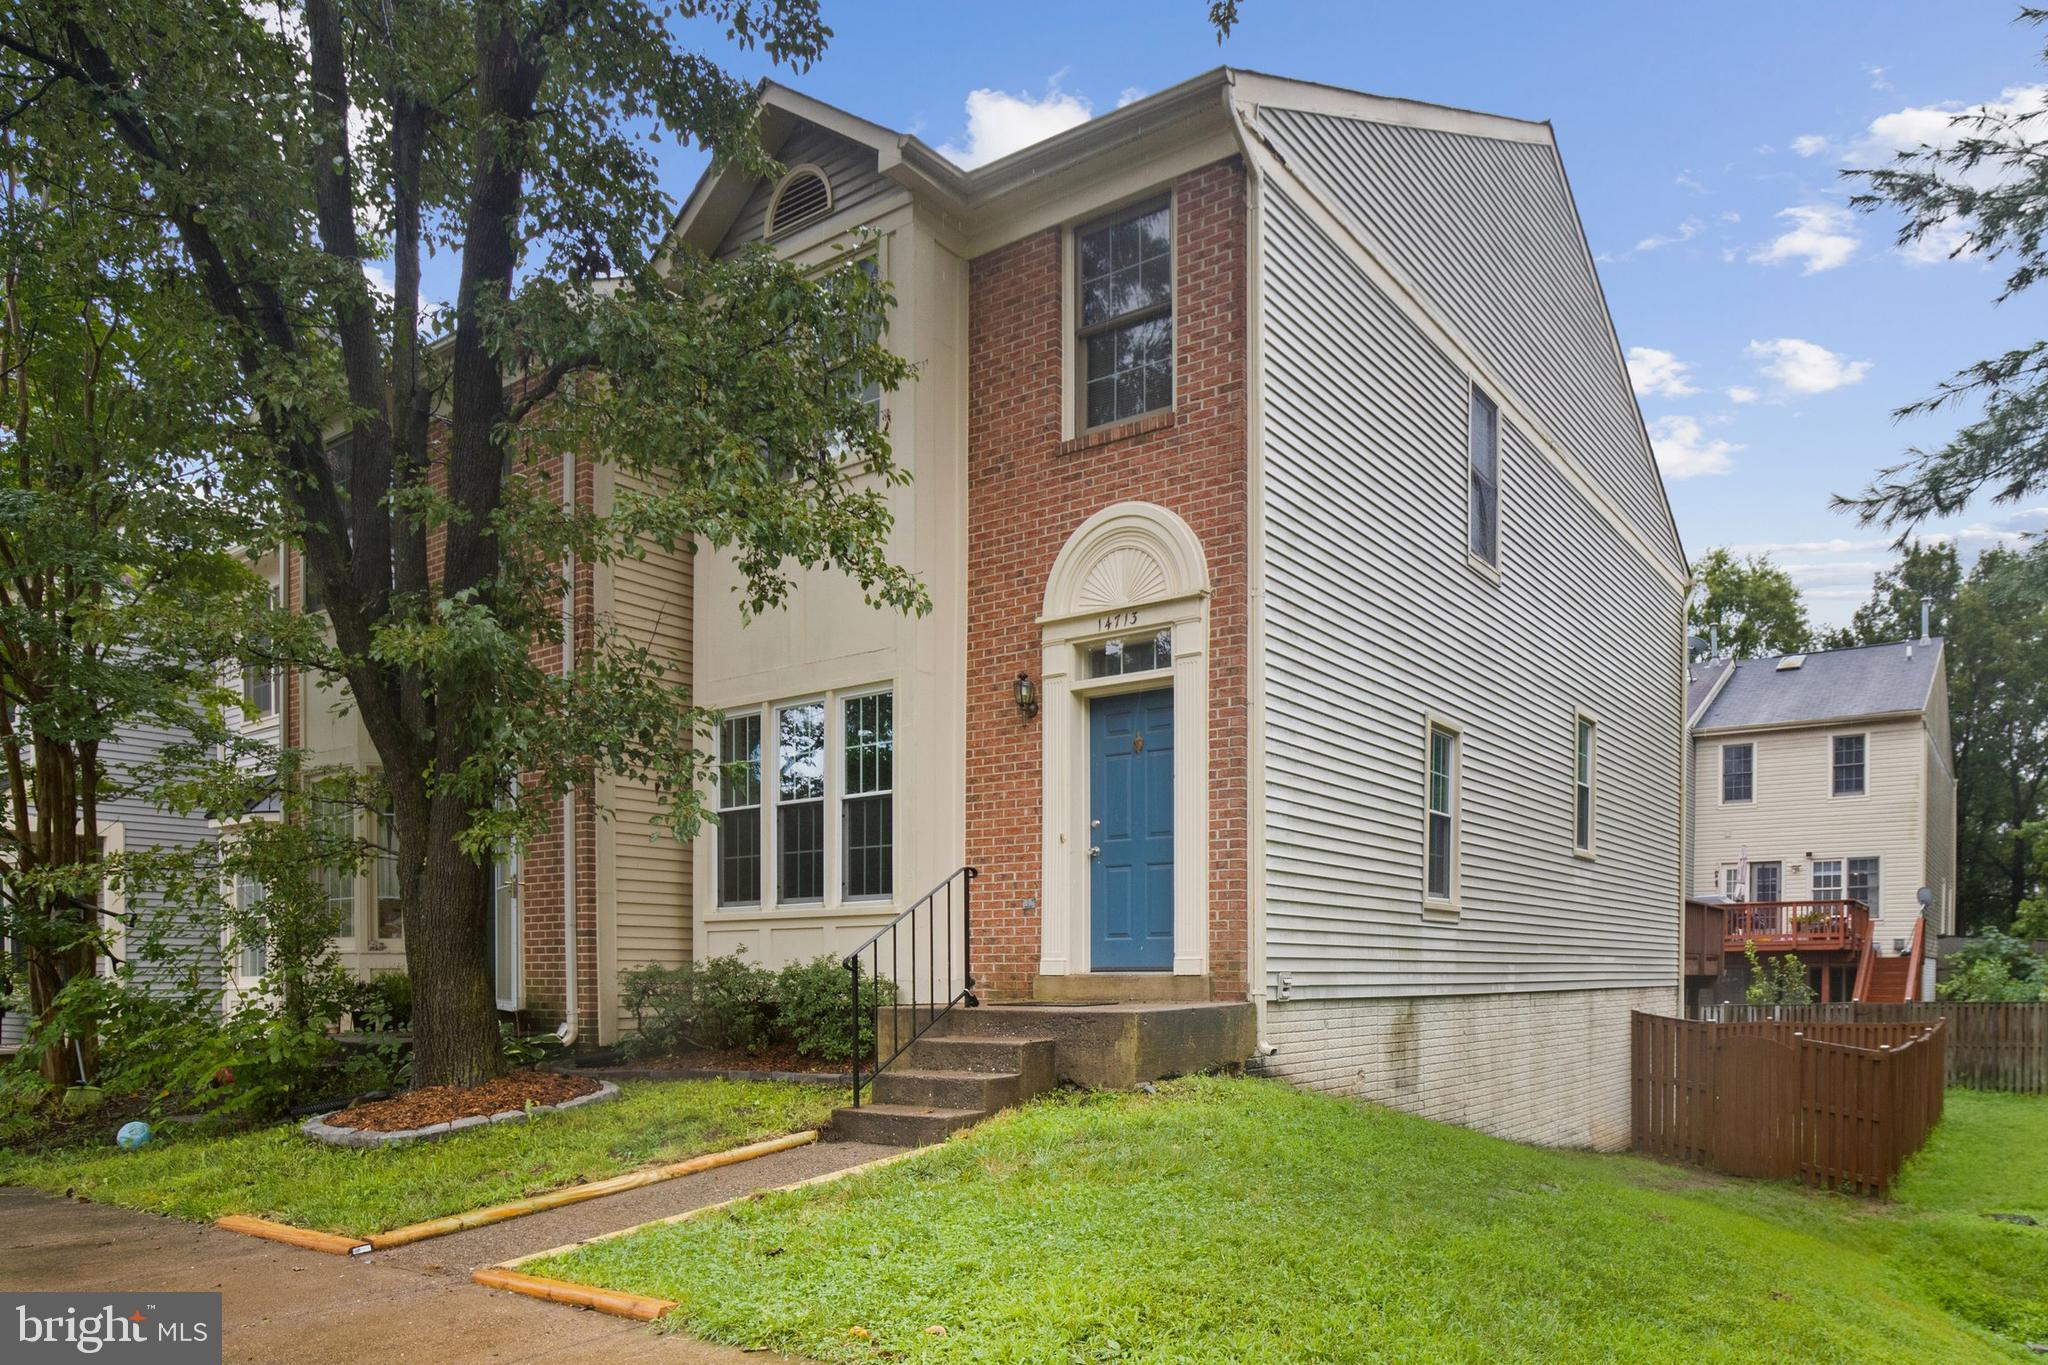 This end-unit townhome is ready for you to move into right now! This 3 level townhome in Centerville